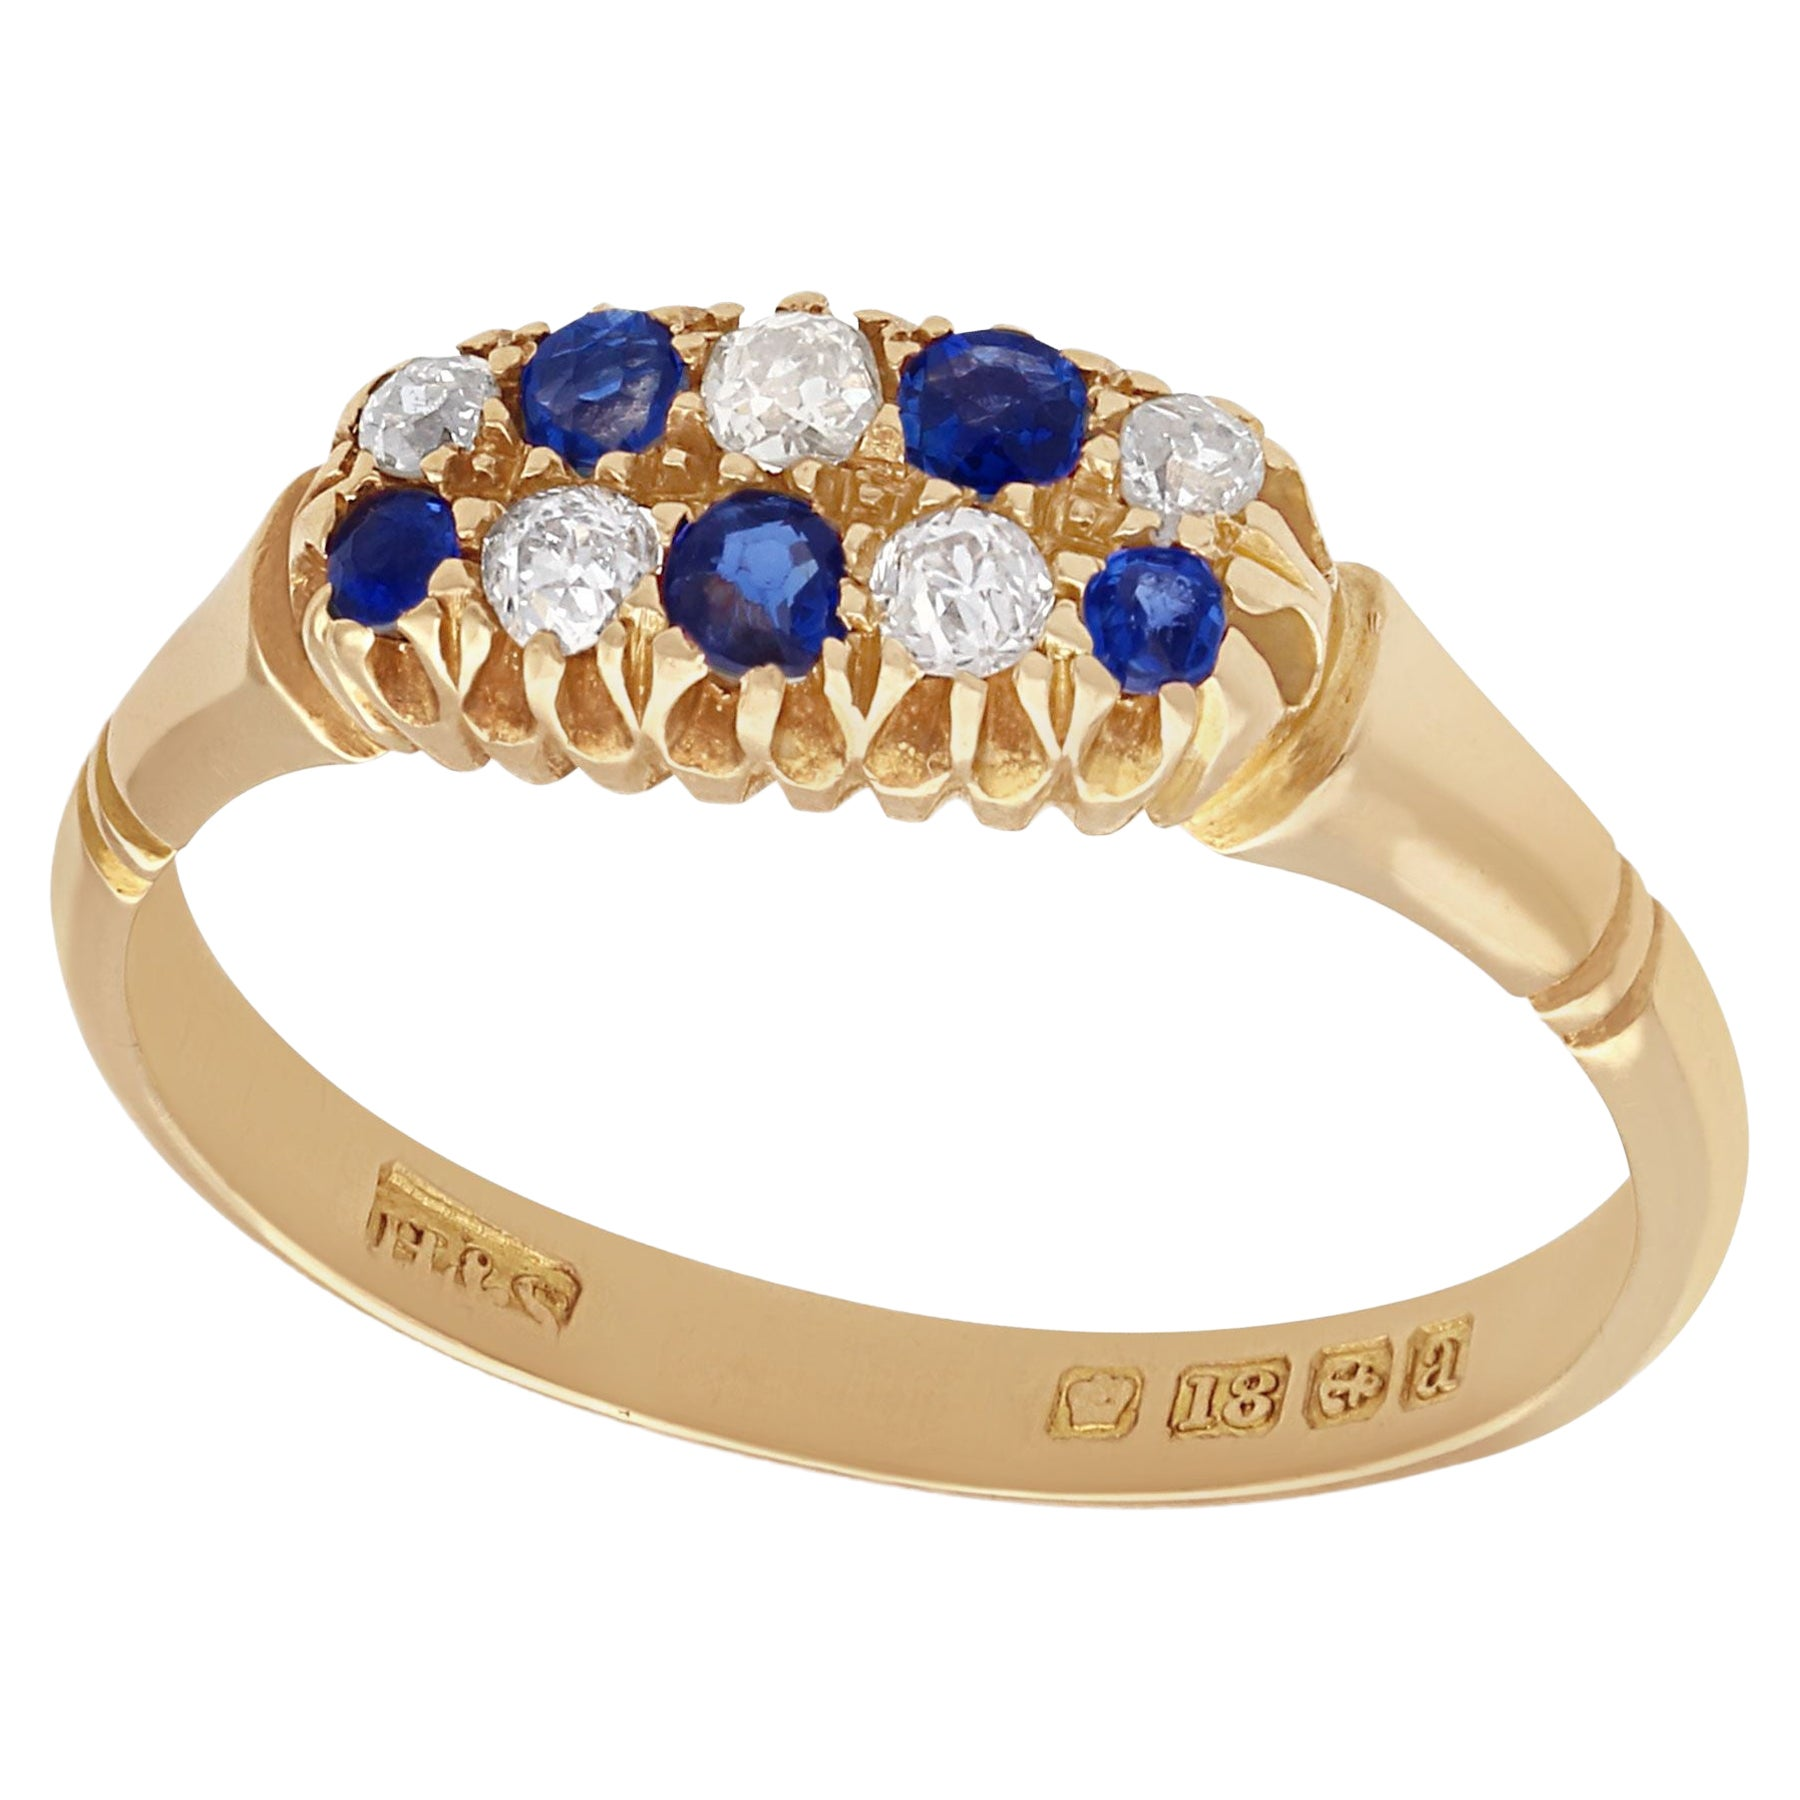 Antique 1900s Sapphire and Diamond Yellow Gold Cocktail Ring